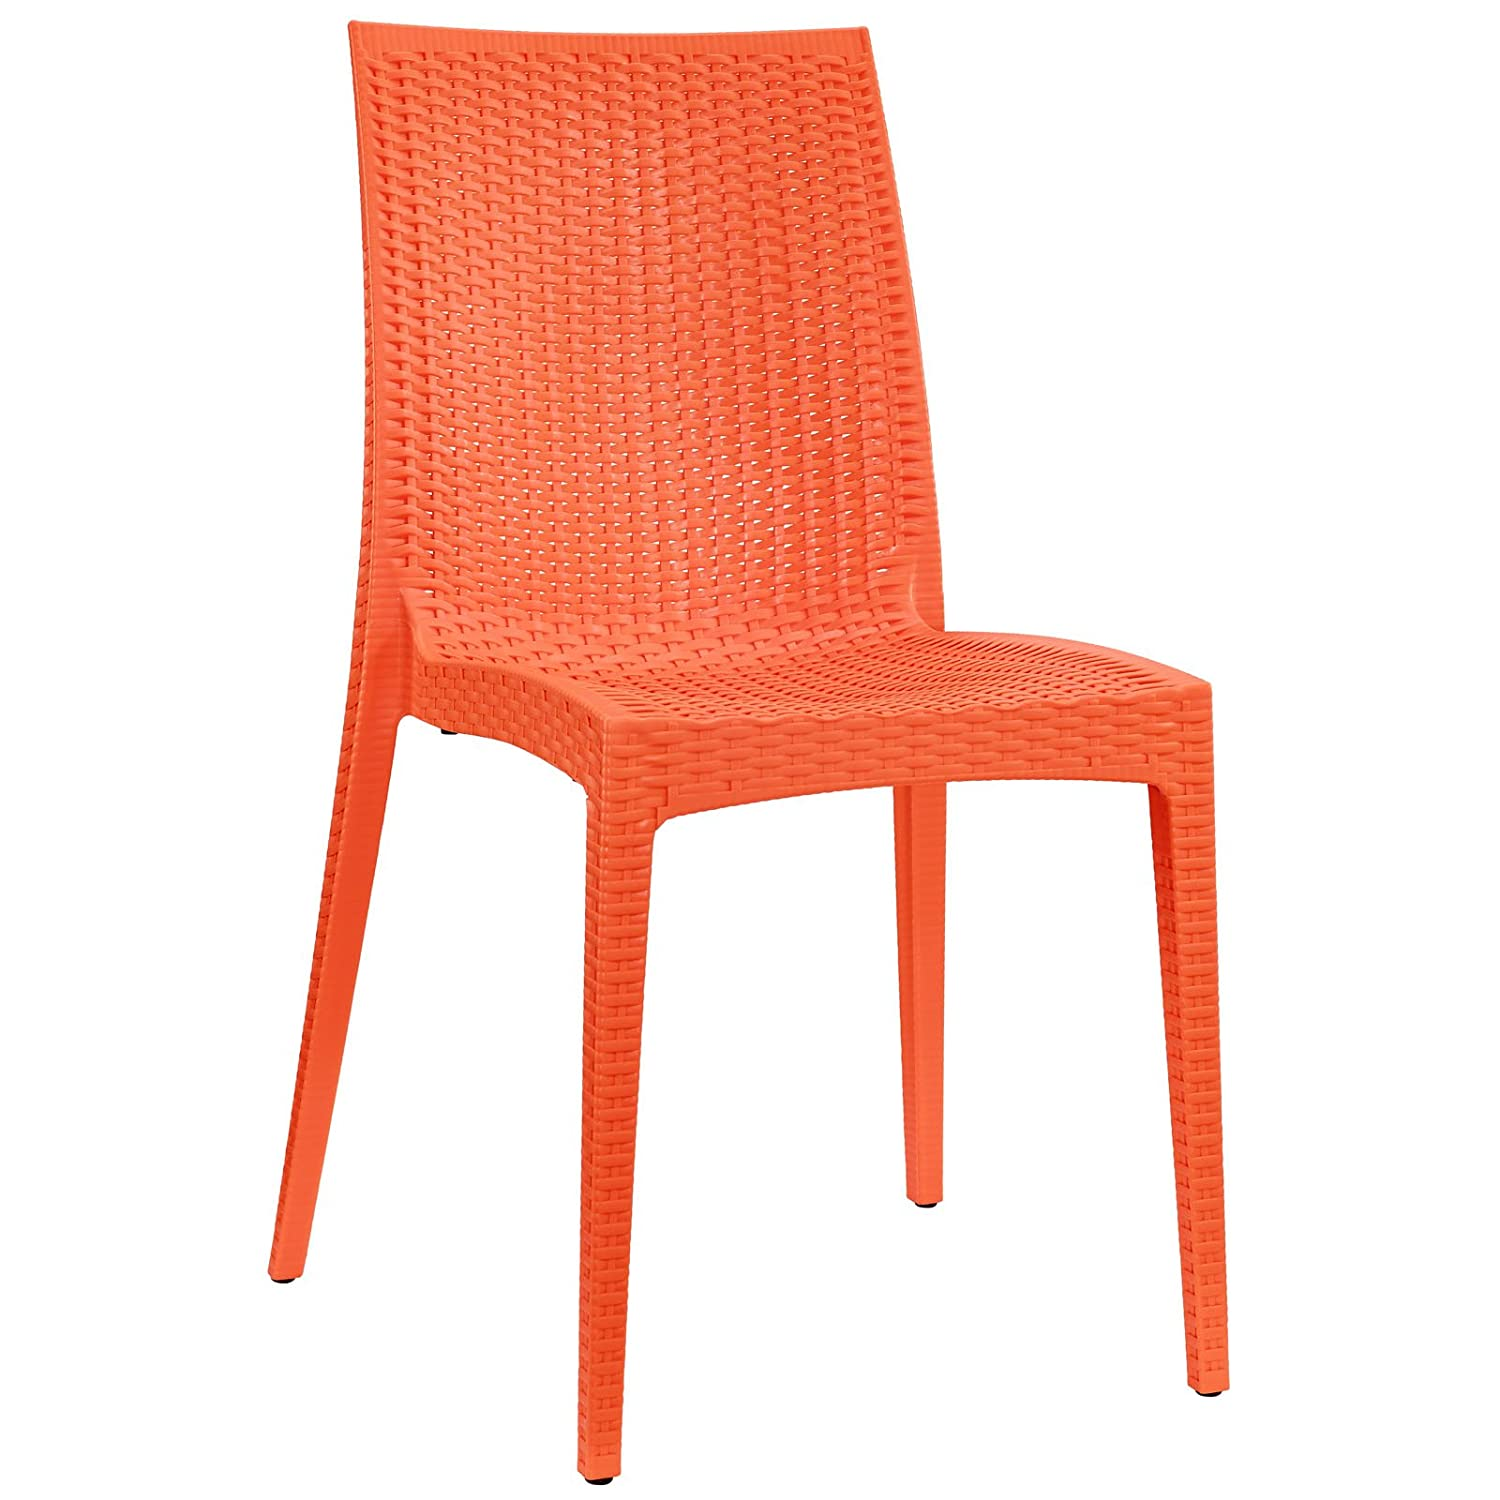 Modway Intrepid Contemporary Modern Molded Plastic Dining Side Chair In Orange